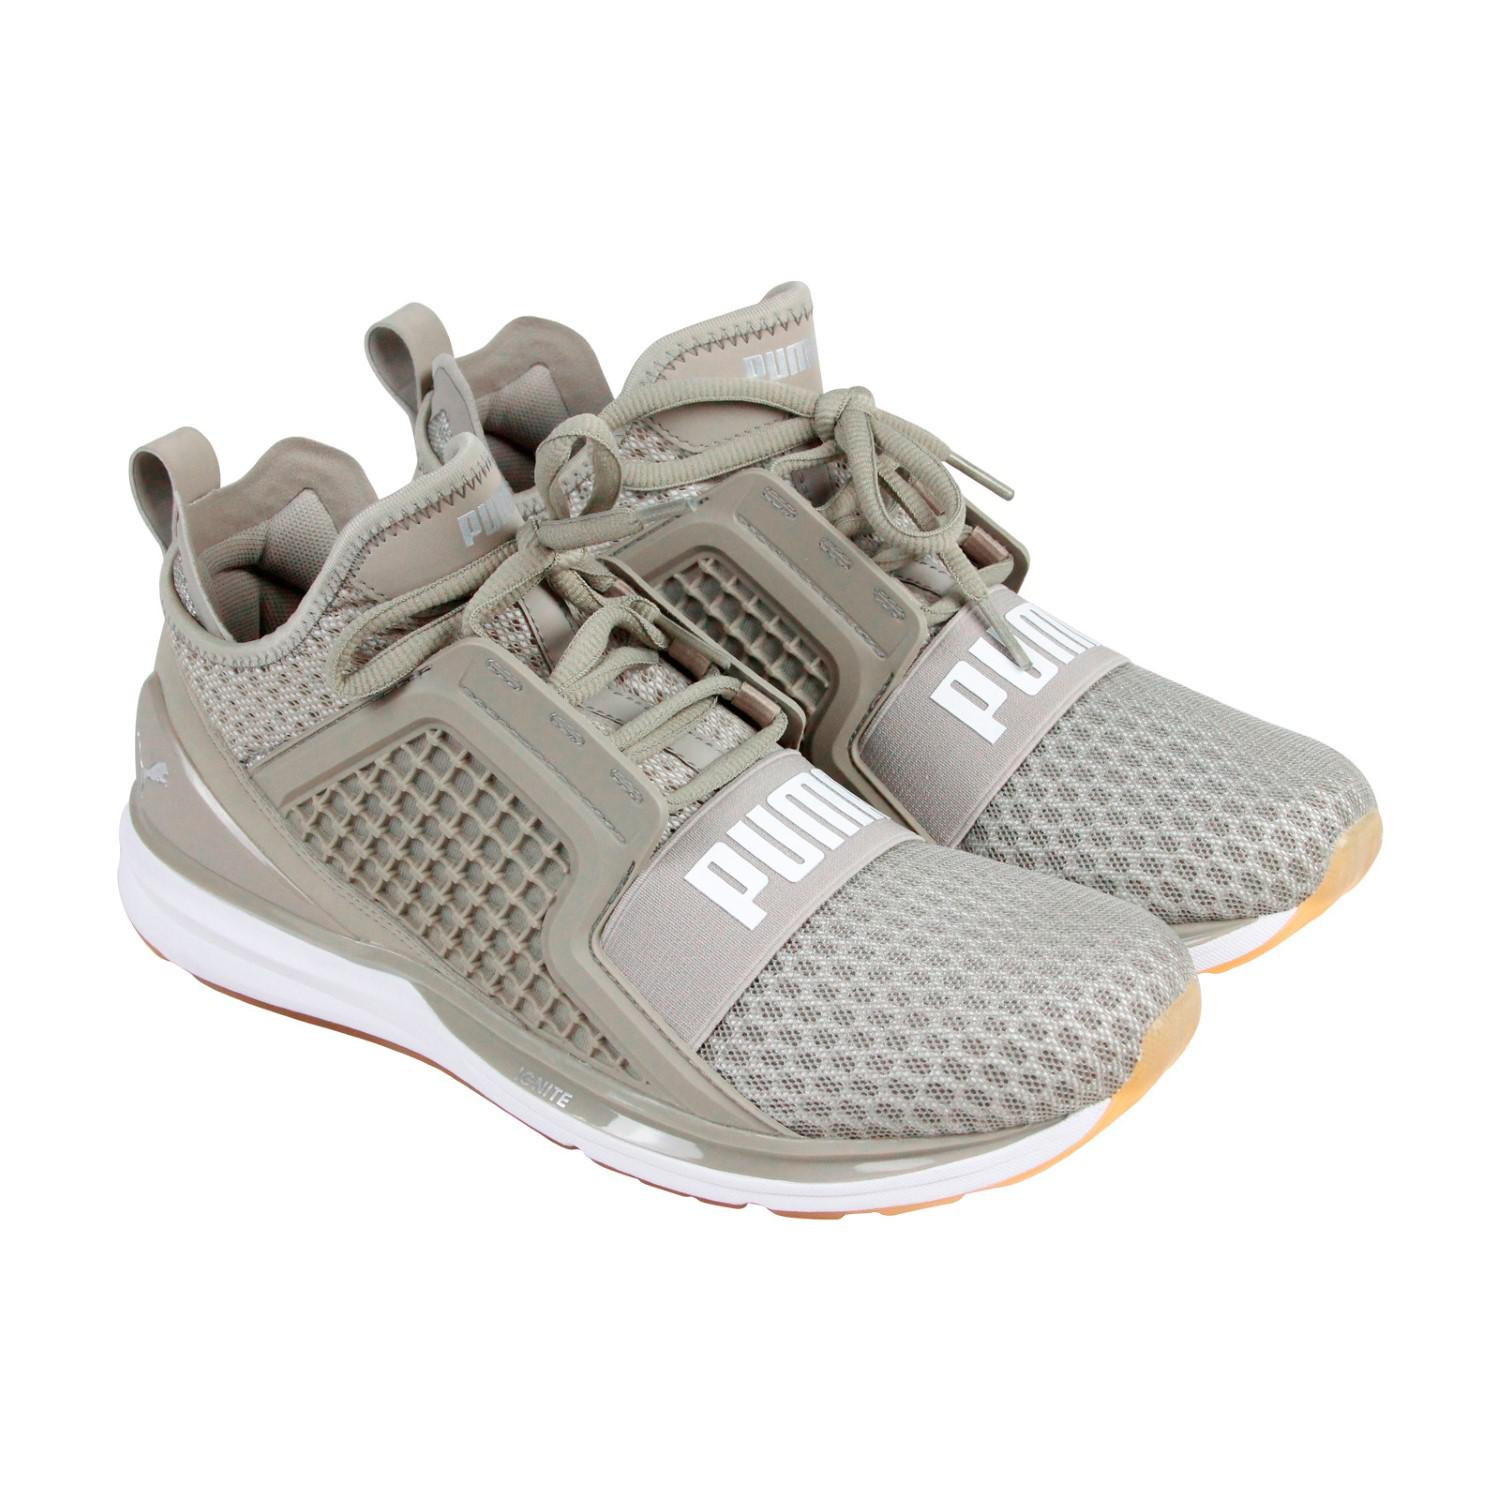 Lyst - Puma Ignite Limitless Casual Sneakers From Finish Line for Men 2974637eb